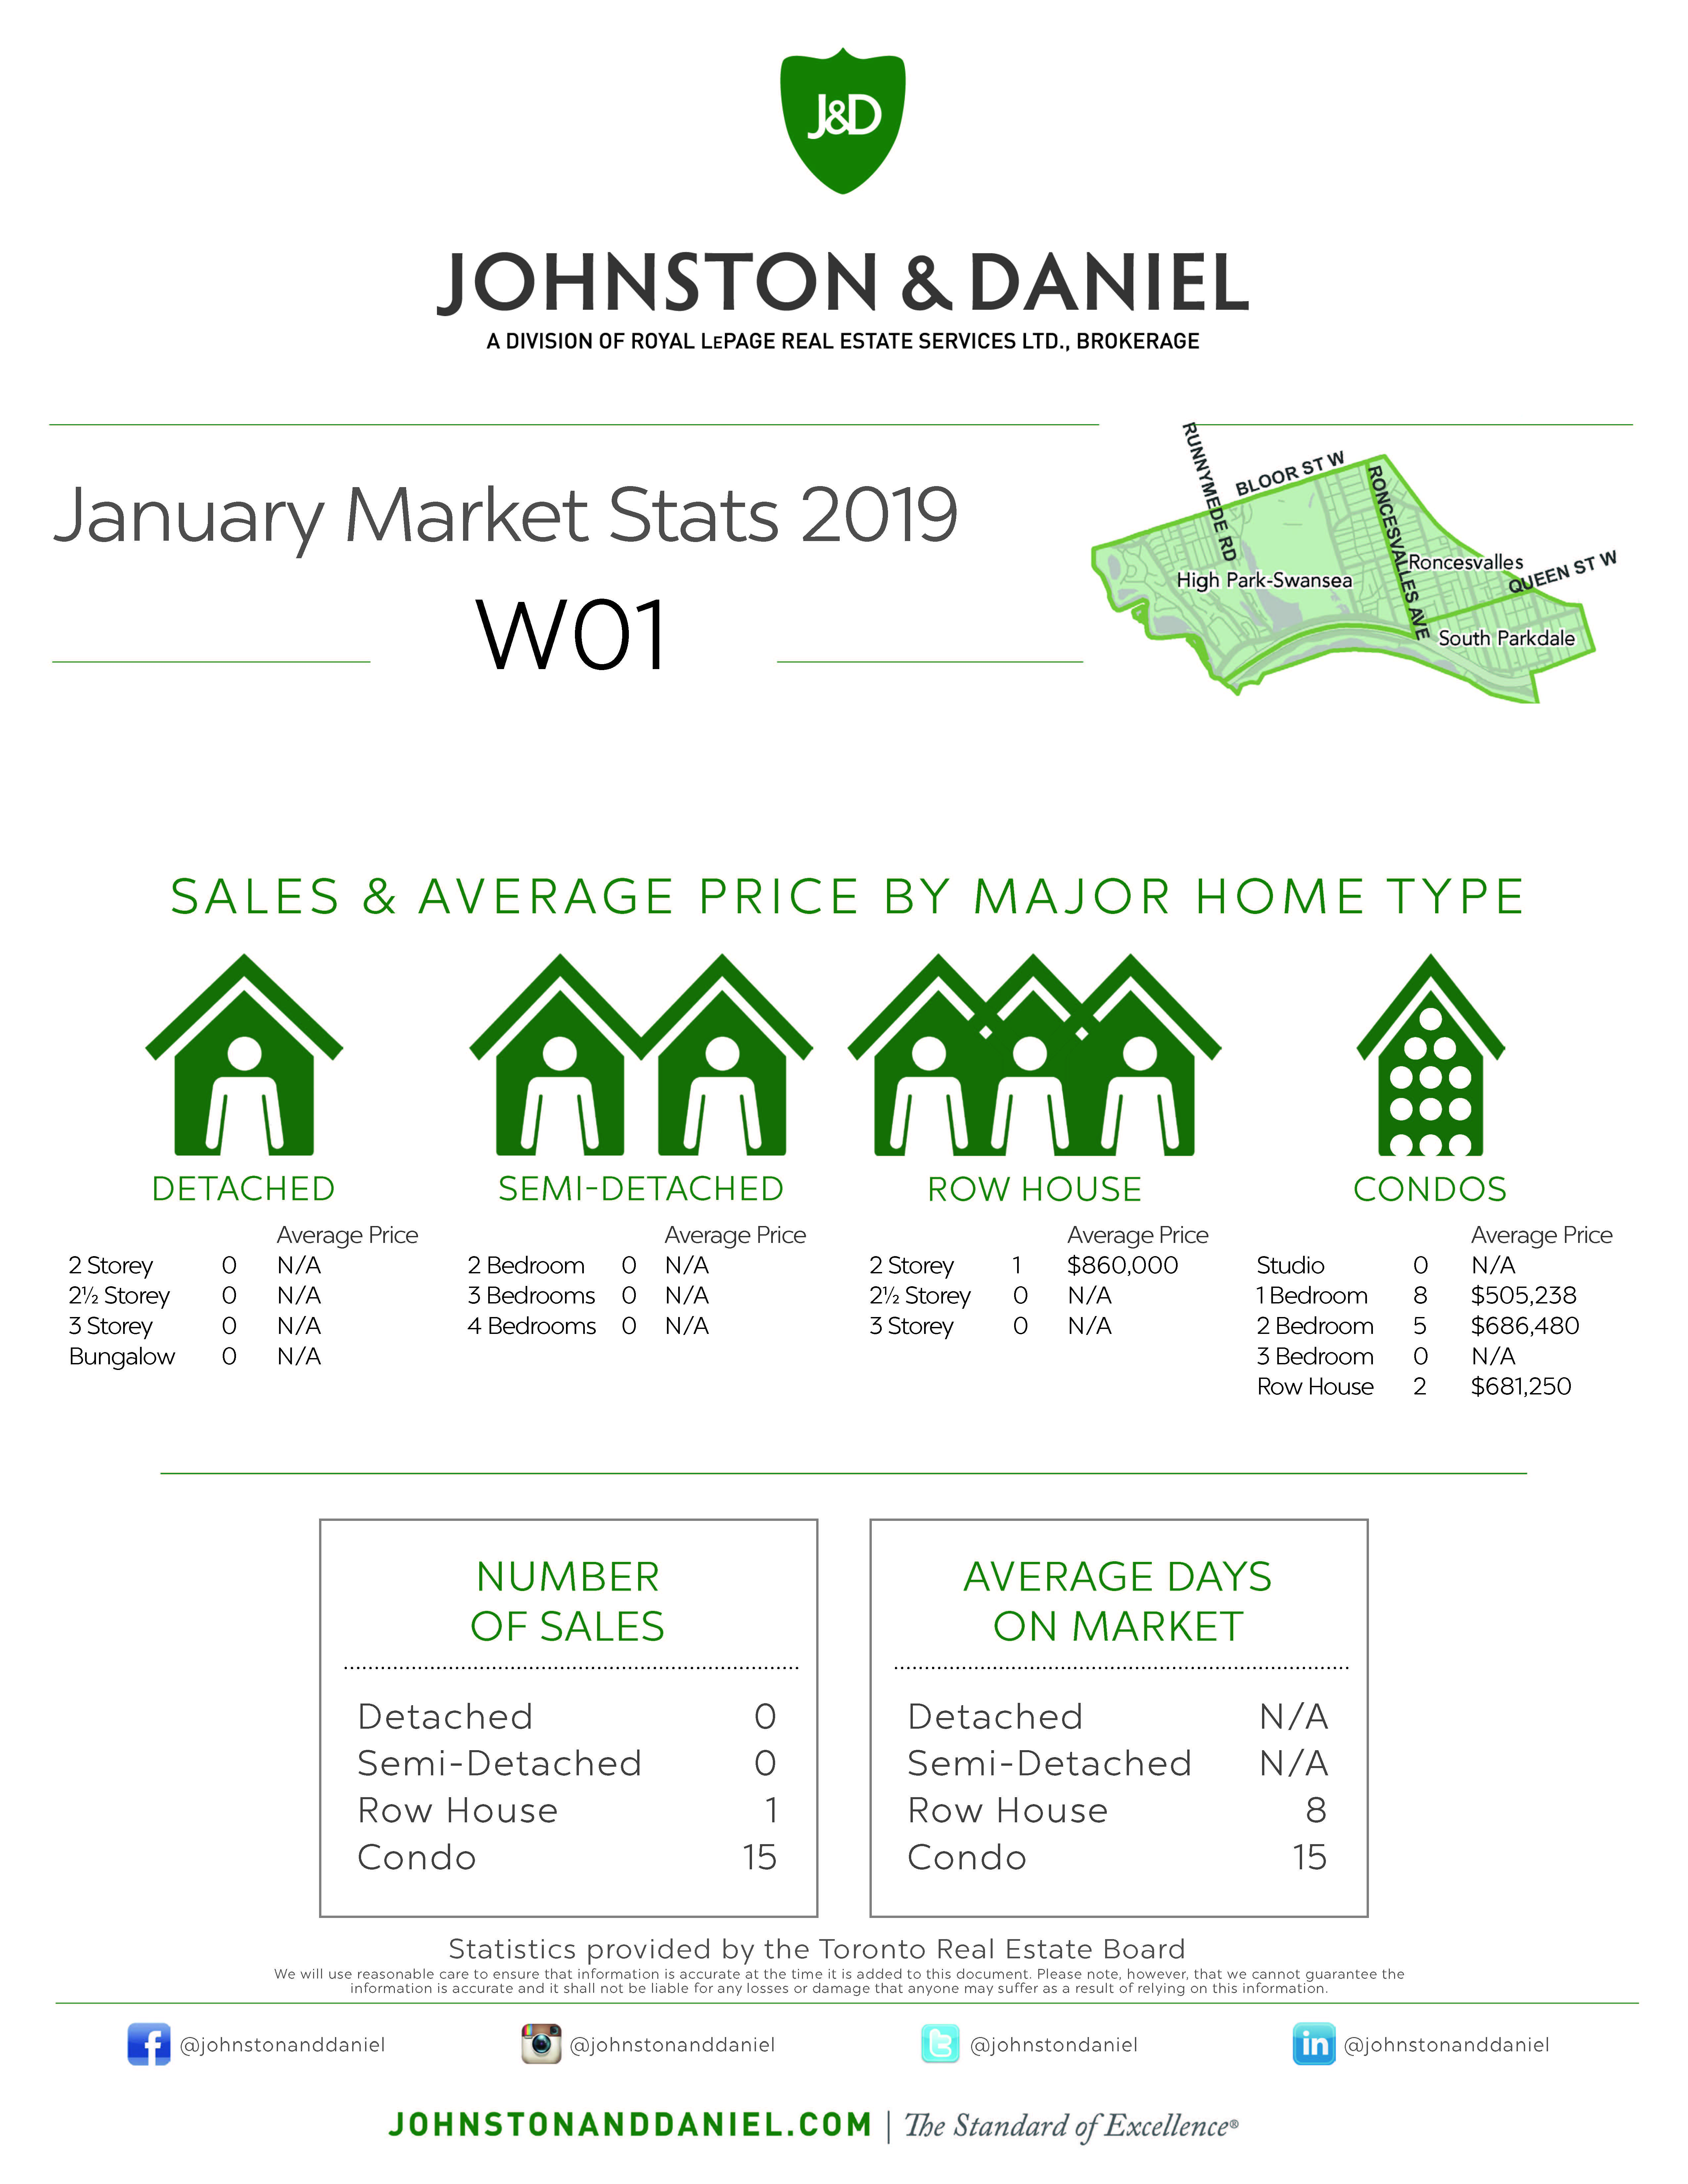 Toronto Real Estate Sales Statistics January 2019 for Area W01